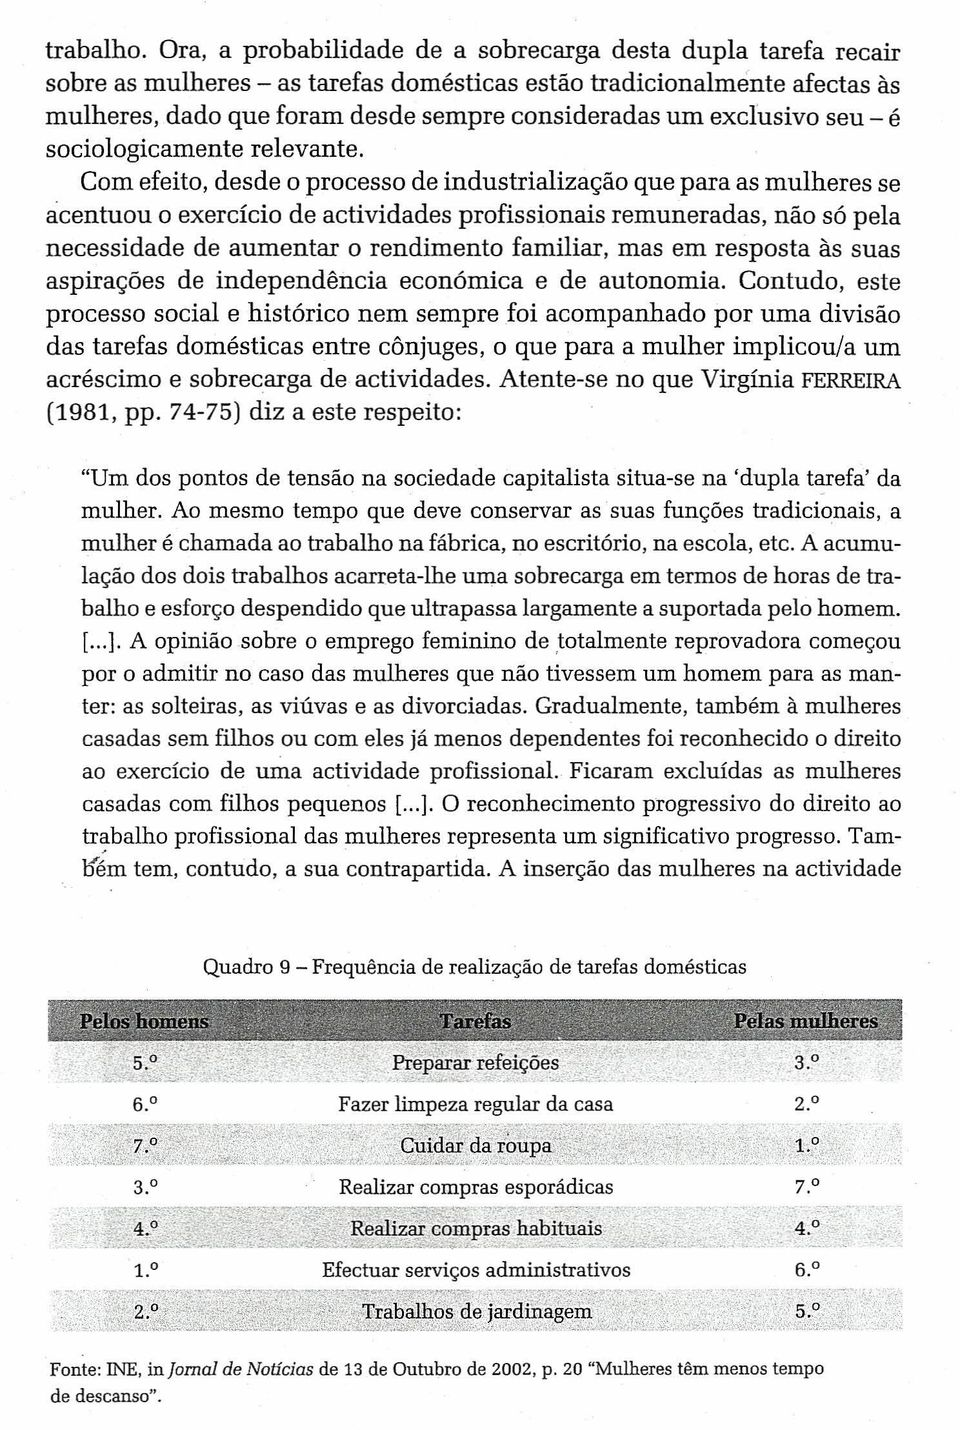 exclusivo seu - é sociologicamente relevante.